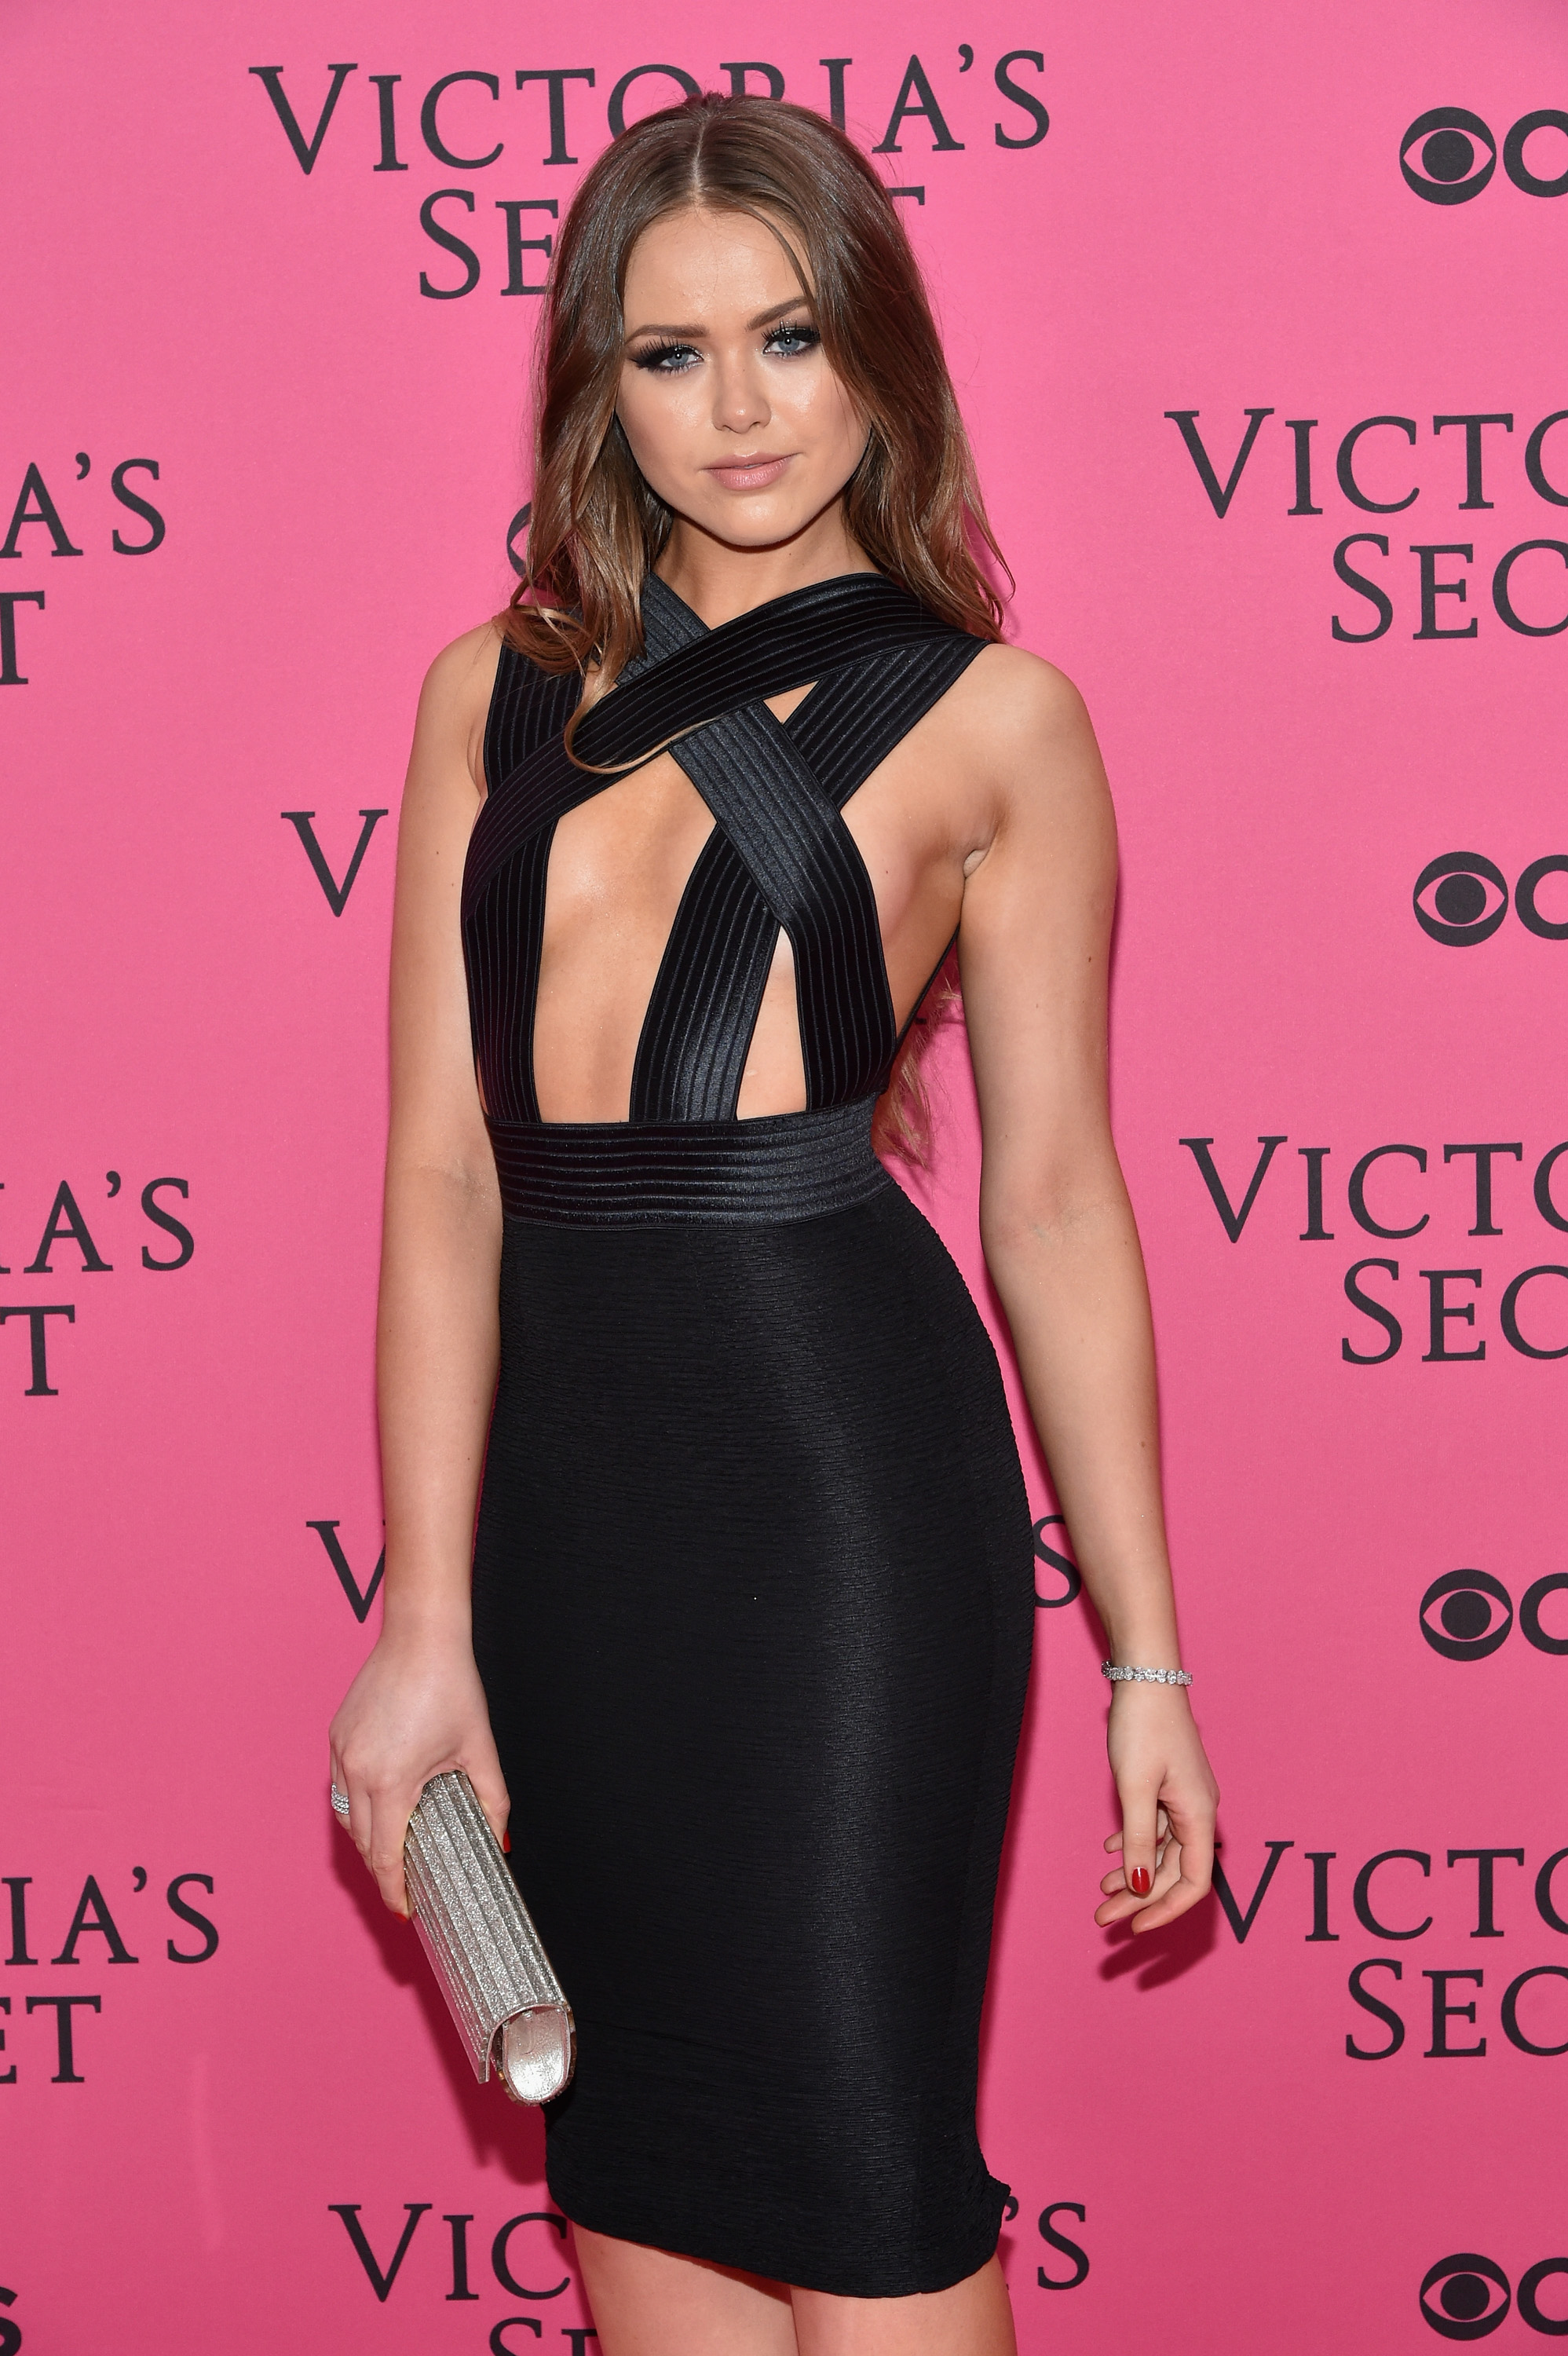 Victoria's Secret Fashion Show's 10 sexiest, wildest looks from the pink carpet [GALLERY]